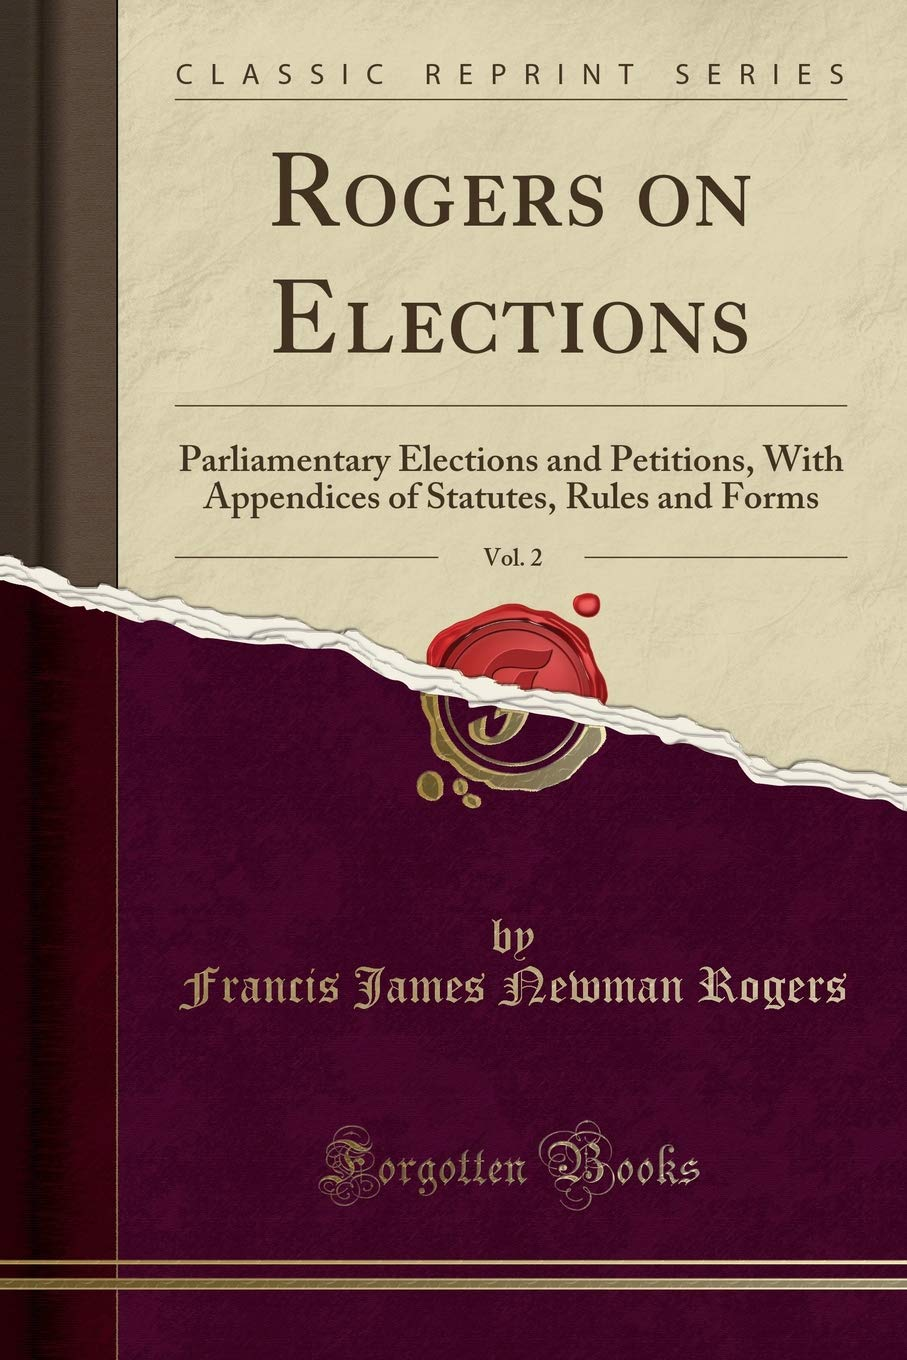 Download Rogers on Elections, Vol. 2: Parliamentary Elections and Petitions, With Appendices of Statutes, Rules and Forms (Classic Reprint) PDF